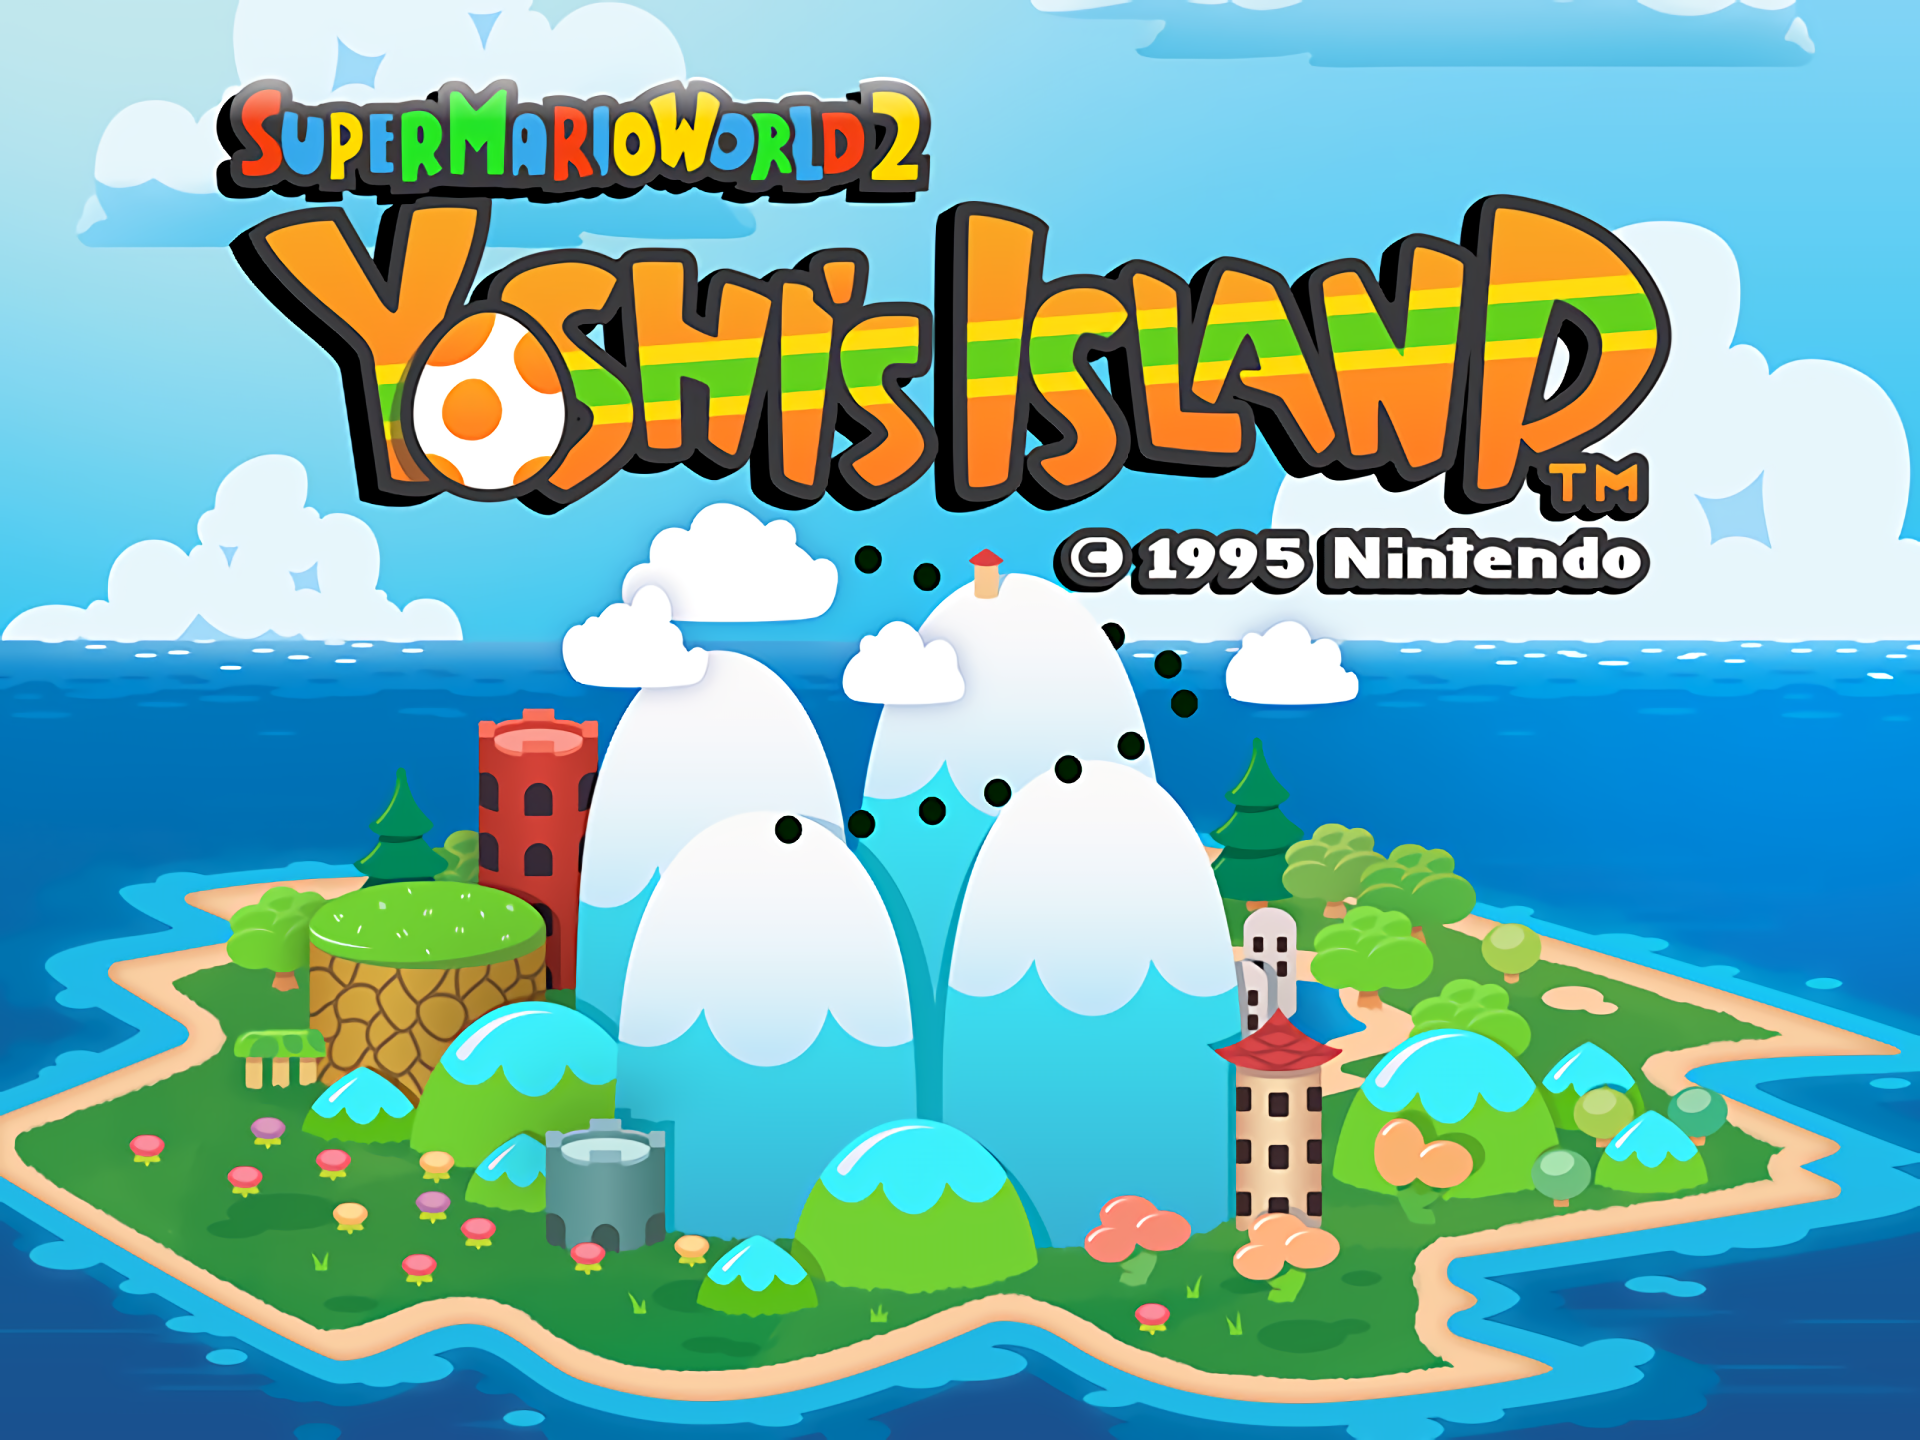 Videospel - Super Mario World 2: Yoshi's Island  Wallpaper